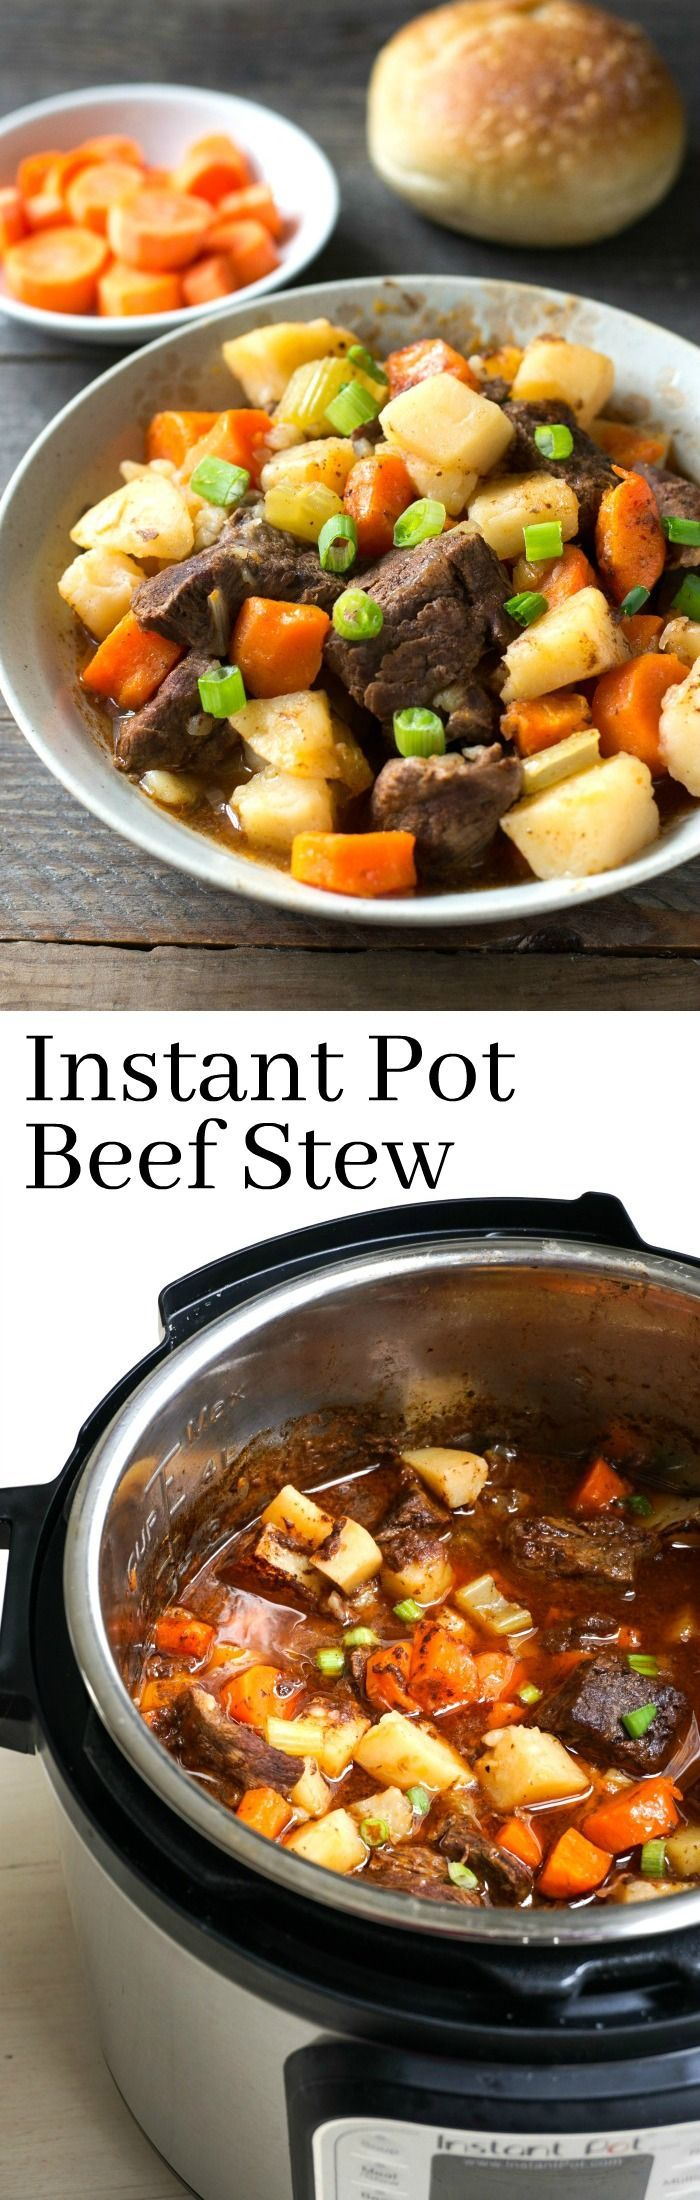 This Instant Pot Beef Stew is a delicious, healthy dinner recipe. It's so easy to make this comfort food favorite in the Instant Pot. via @realfoodrecipes